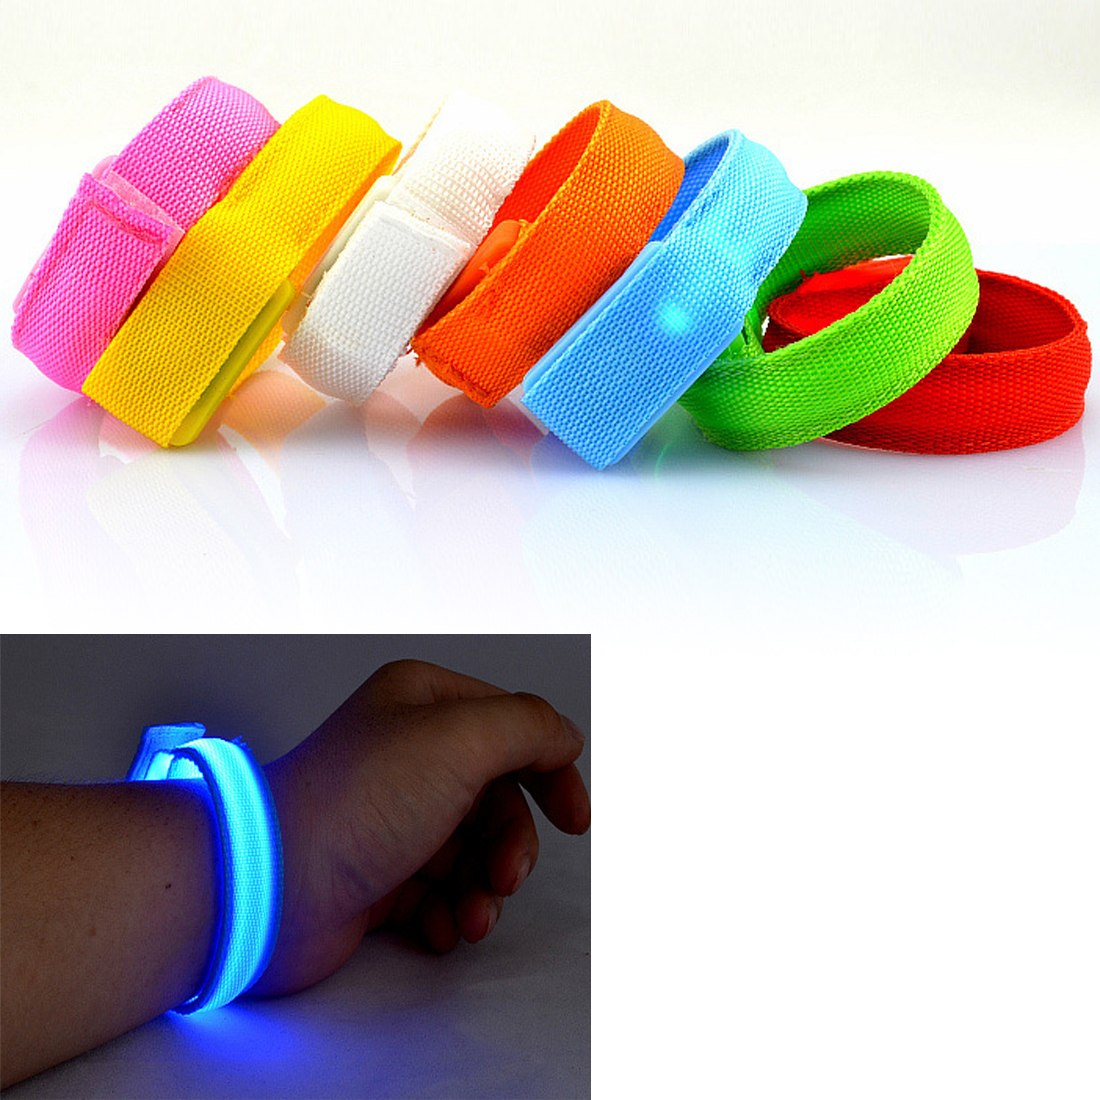 Hot Beautiful Led Flashing Wrist Band Bracelet Light Up Glow Outdoor In The Dark Dance Party Sports Multi Colors Fun